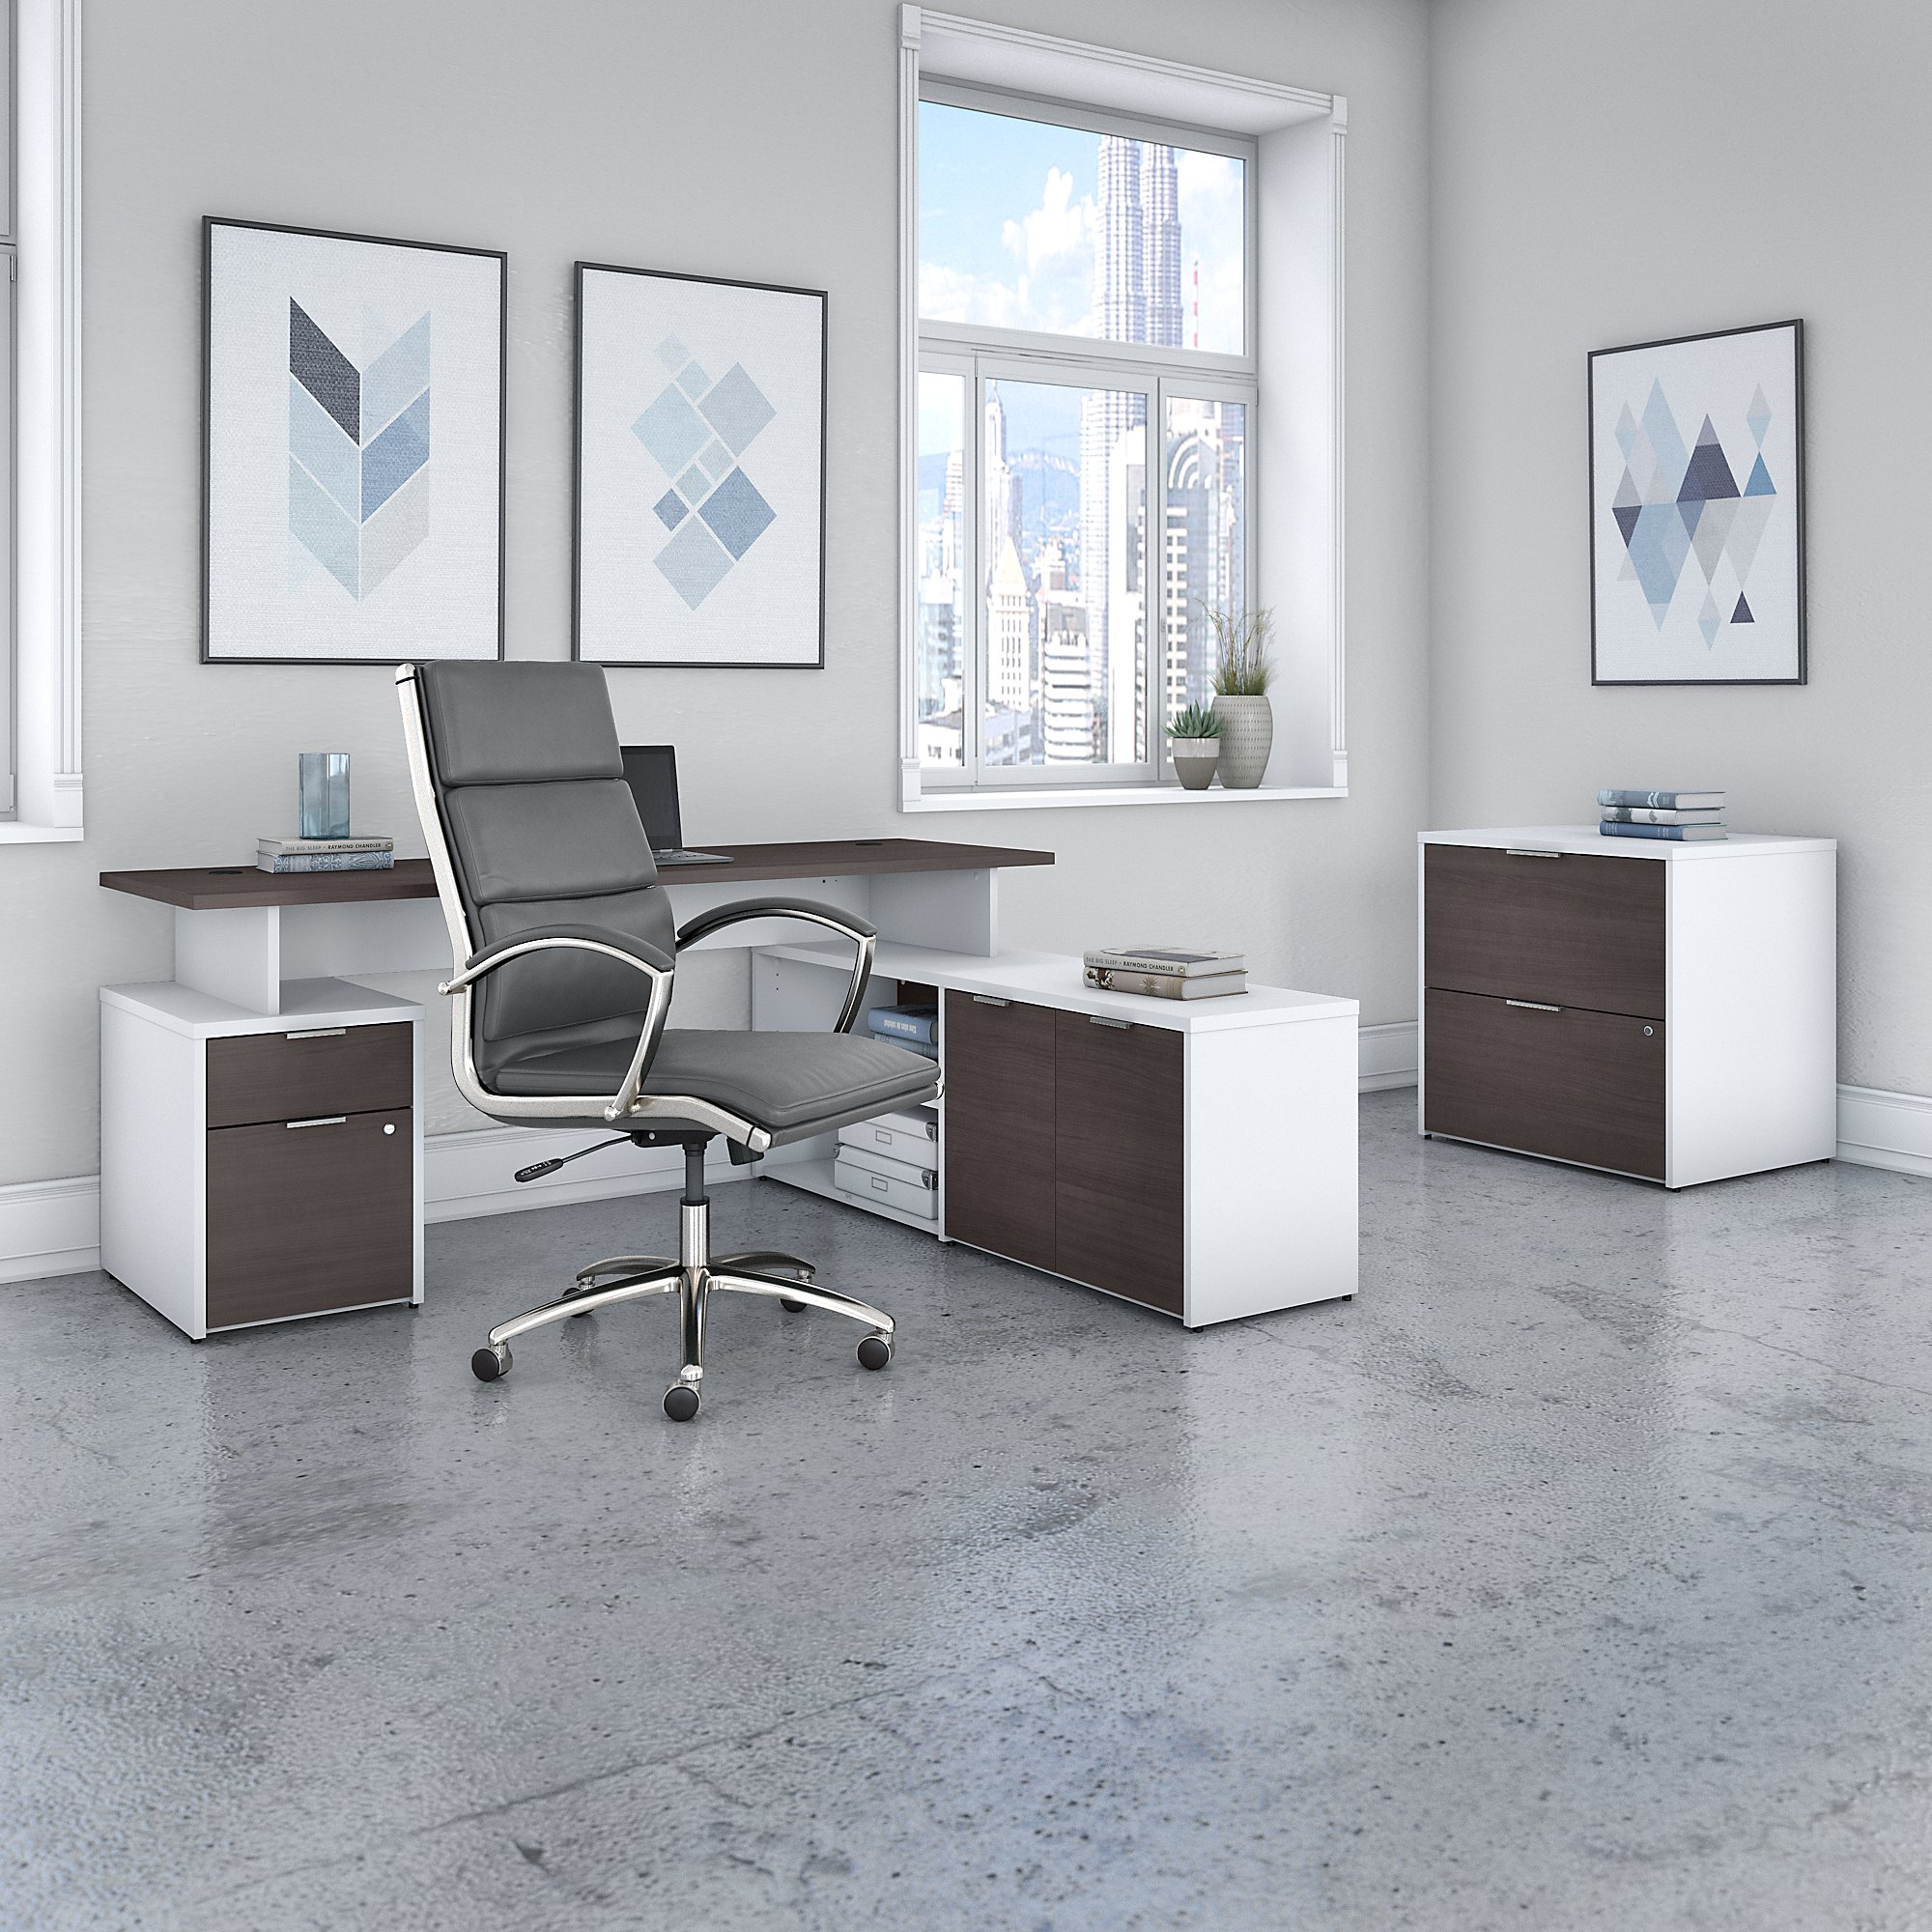 bush business furniture storm gray and white jamestown furniture set with matching office chair